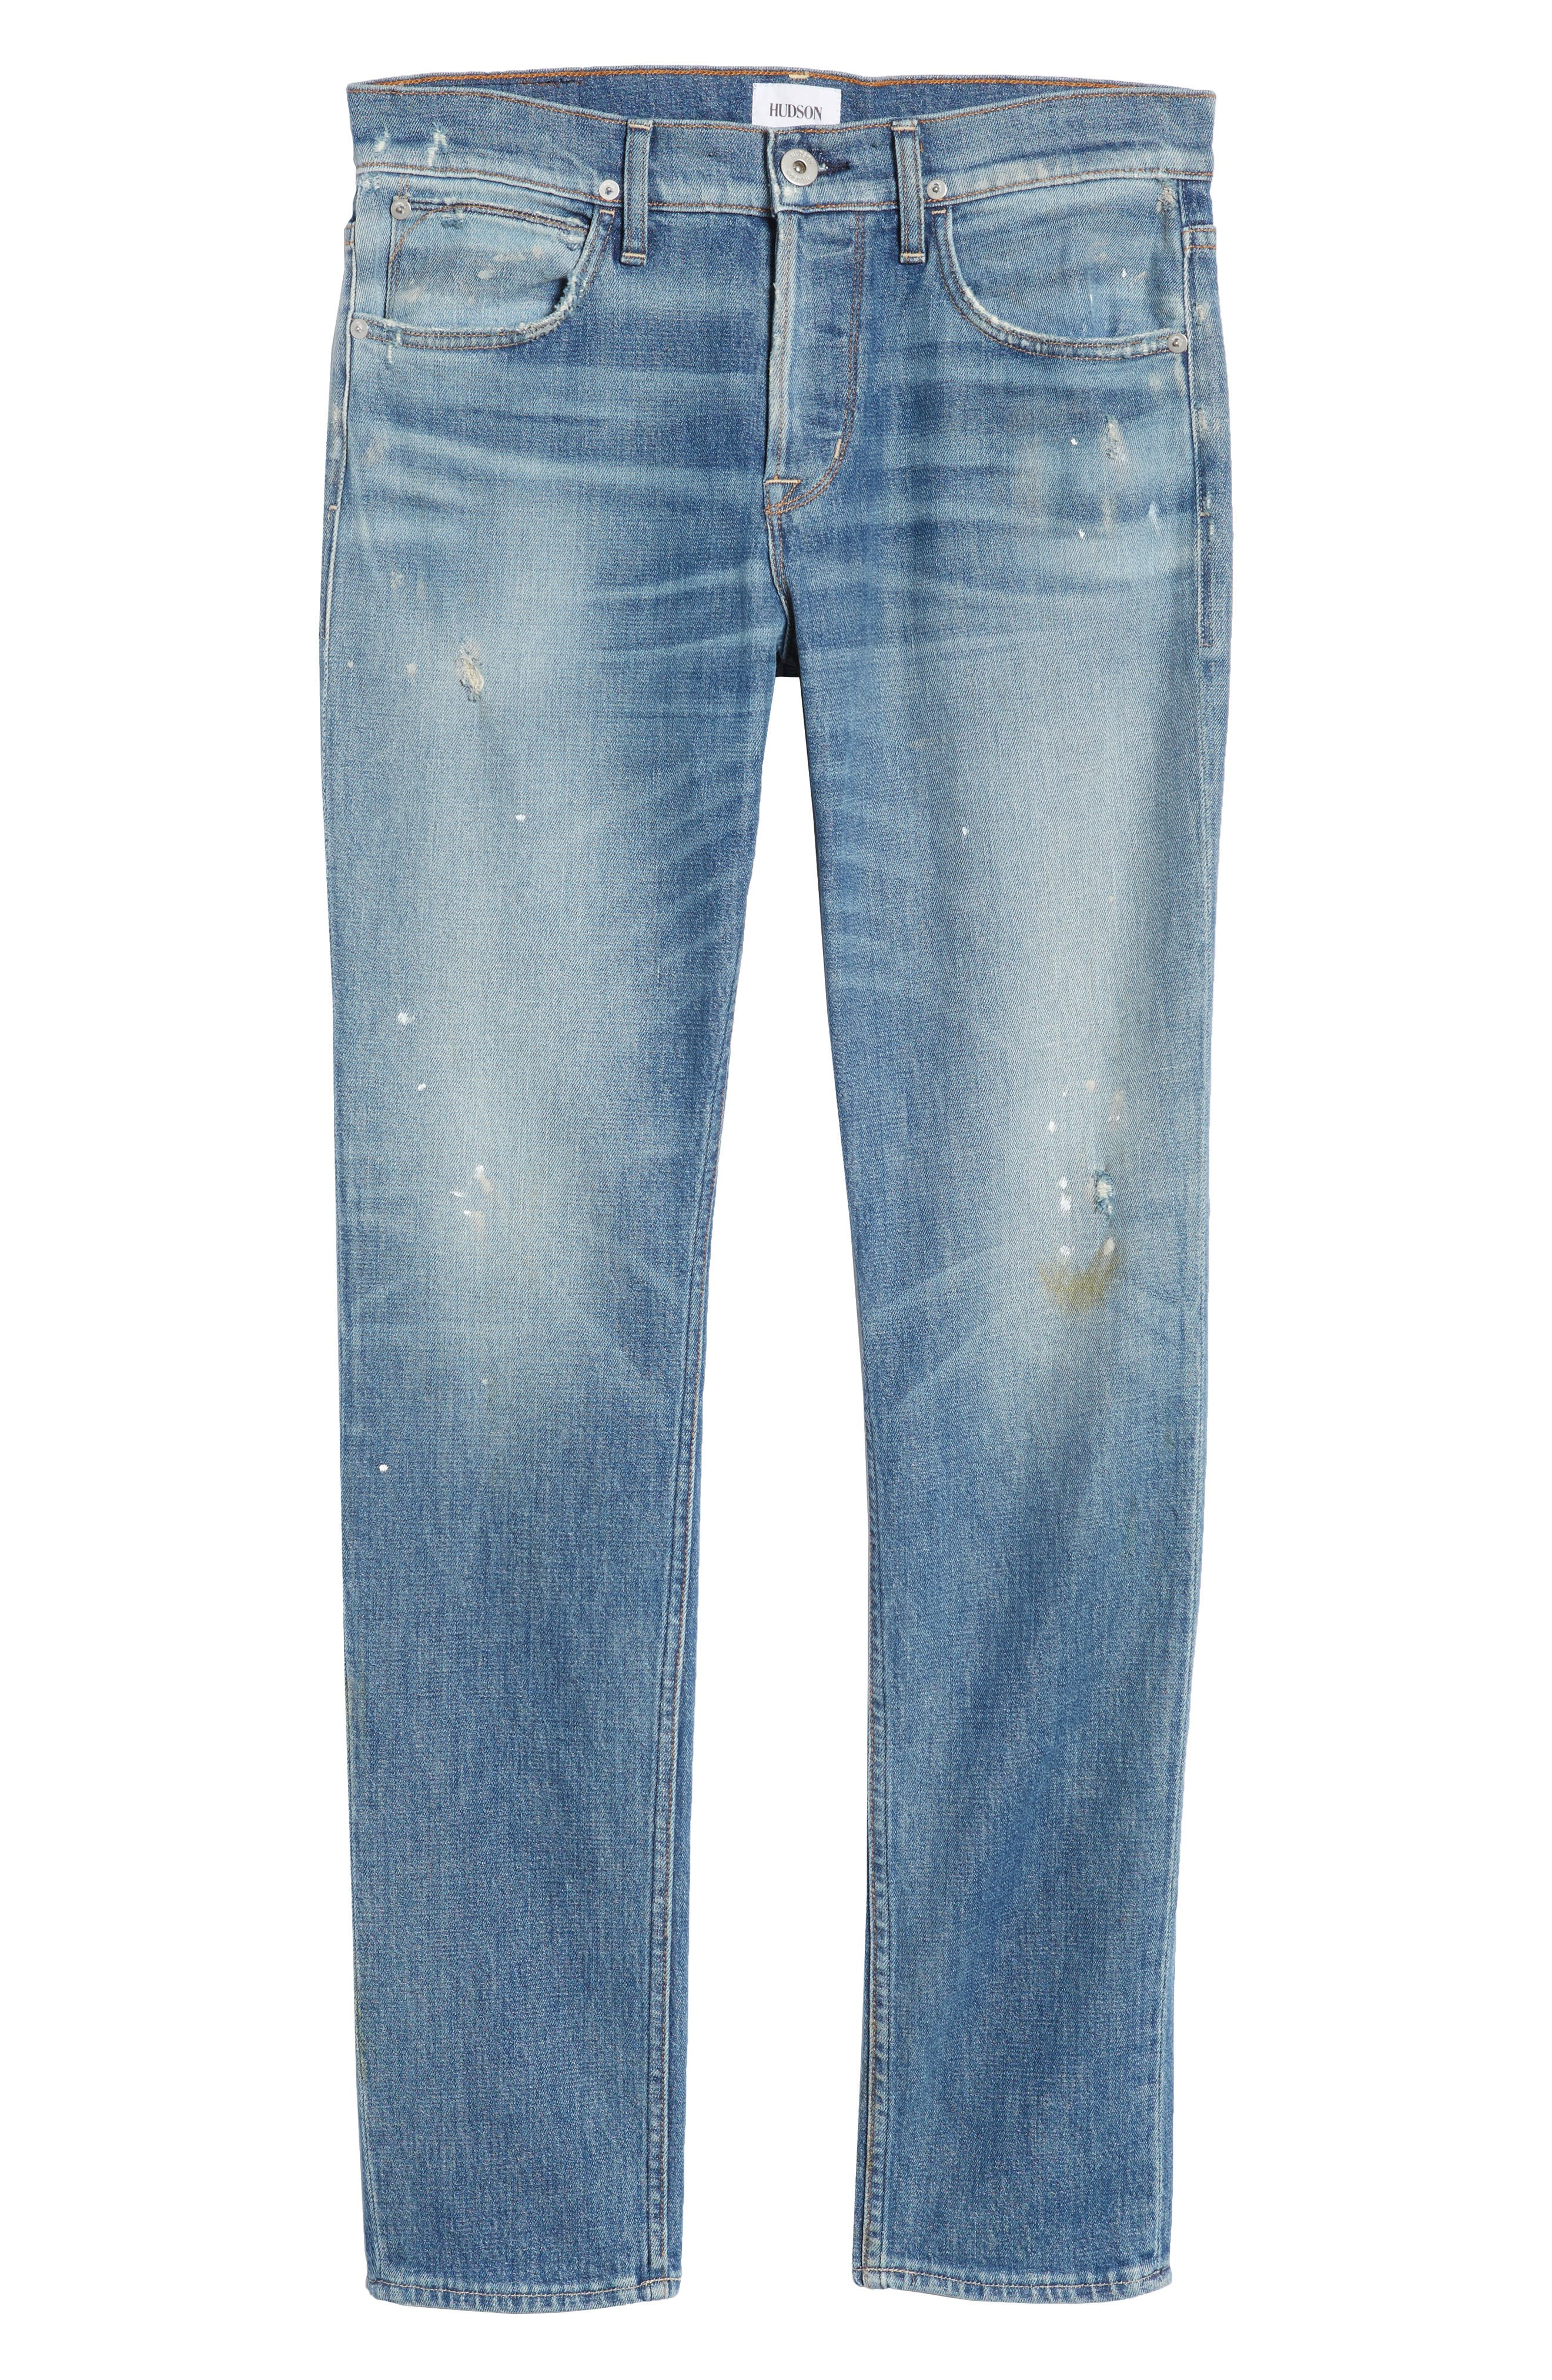 Axl Skinny Fit Jeans,                             Alternate thumbnail 6, color,                             450